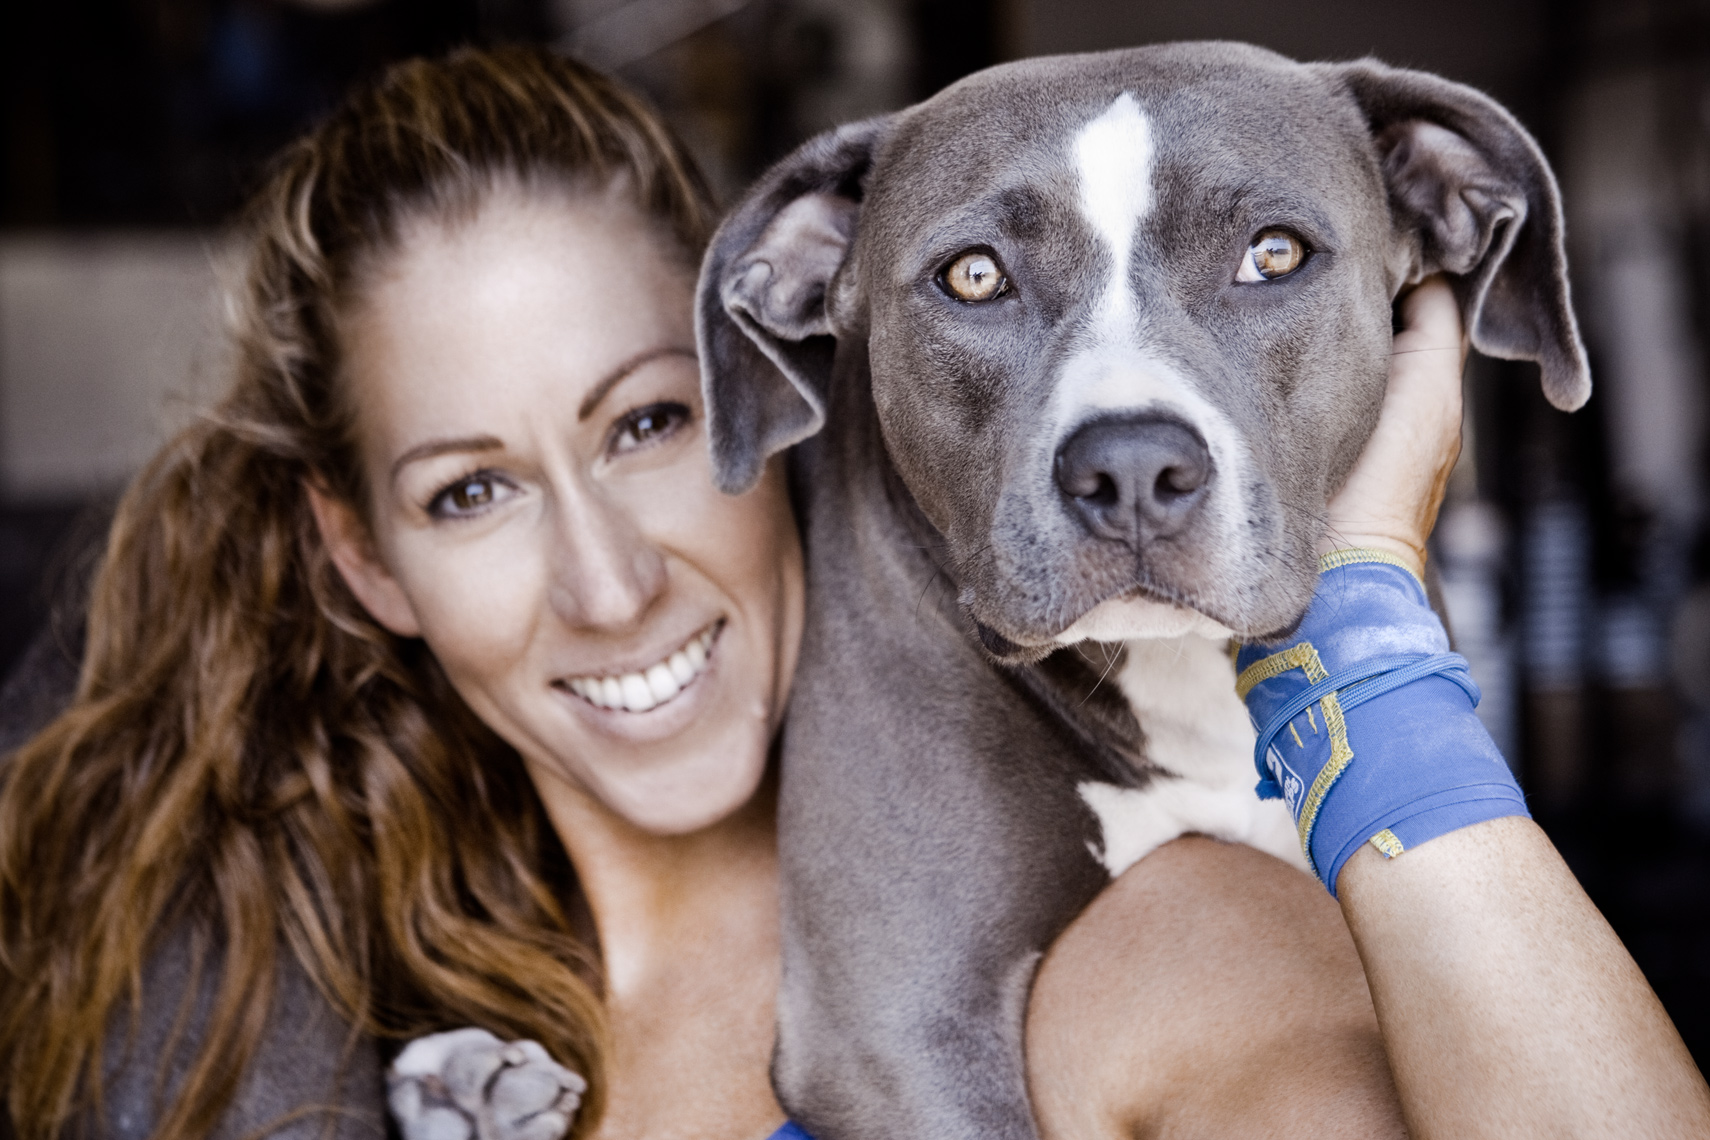 Crossfit, LA Dog Photography, Michael Brian, Los Angeles Sports, Kelly Urbani, Strength Wraps, Blue Nose Pit Bull, Orange Coast Crossfit